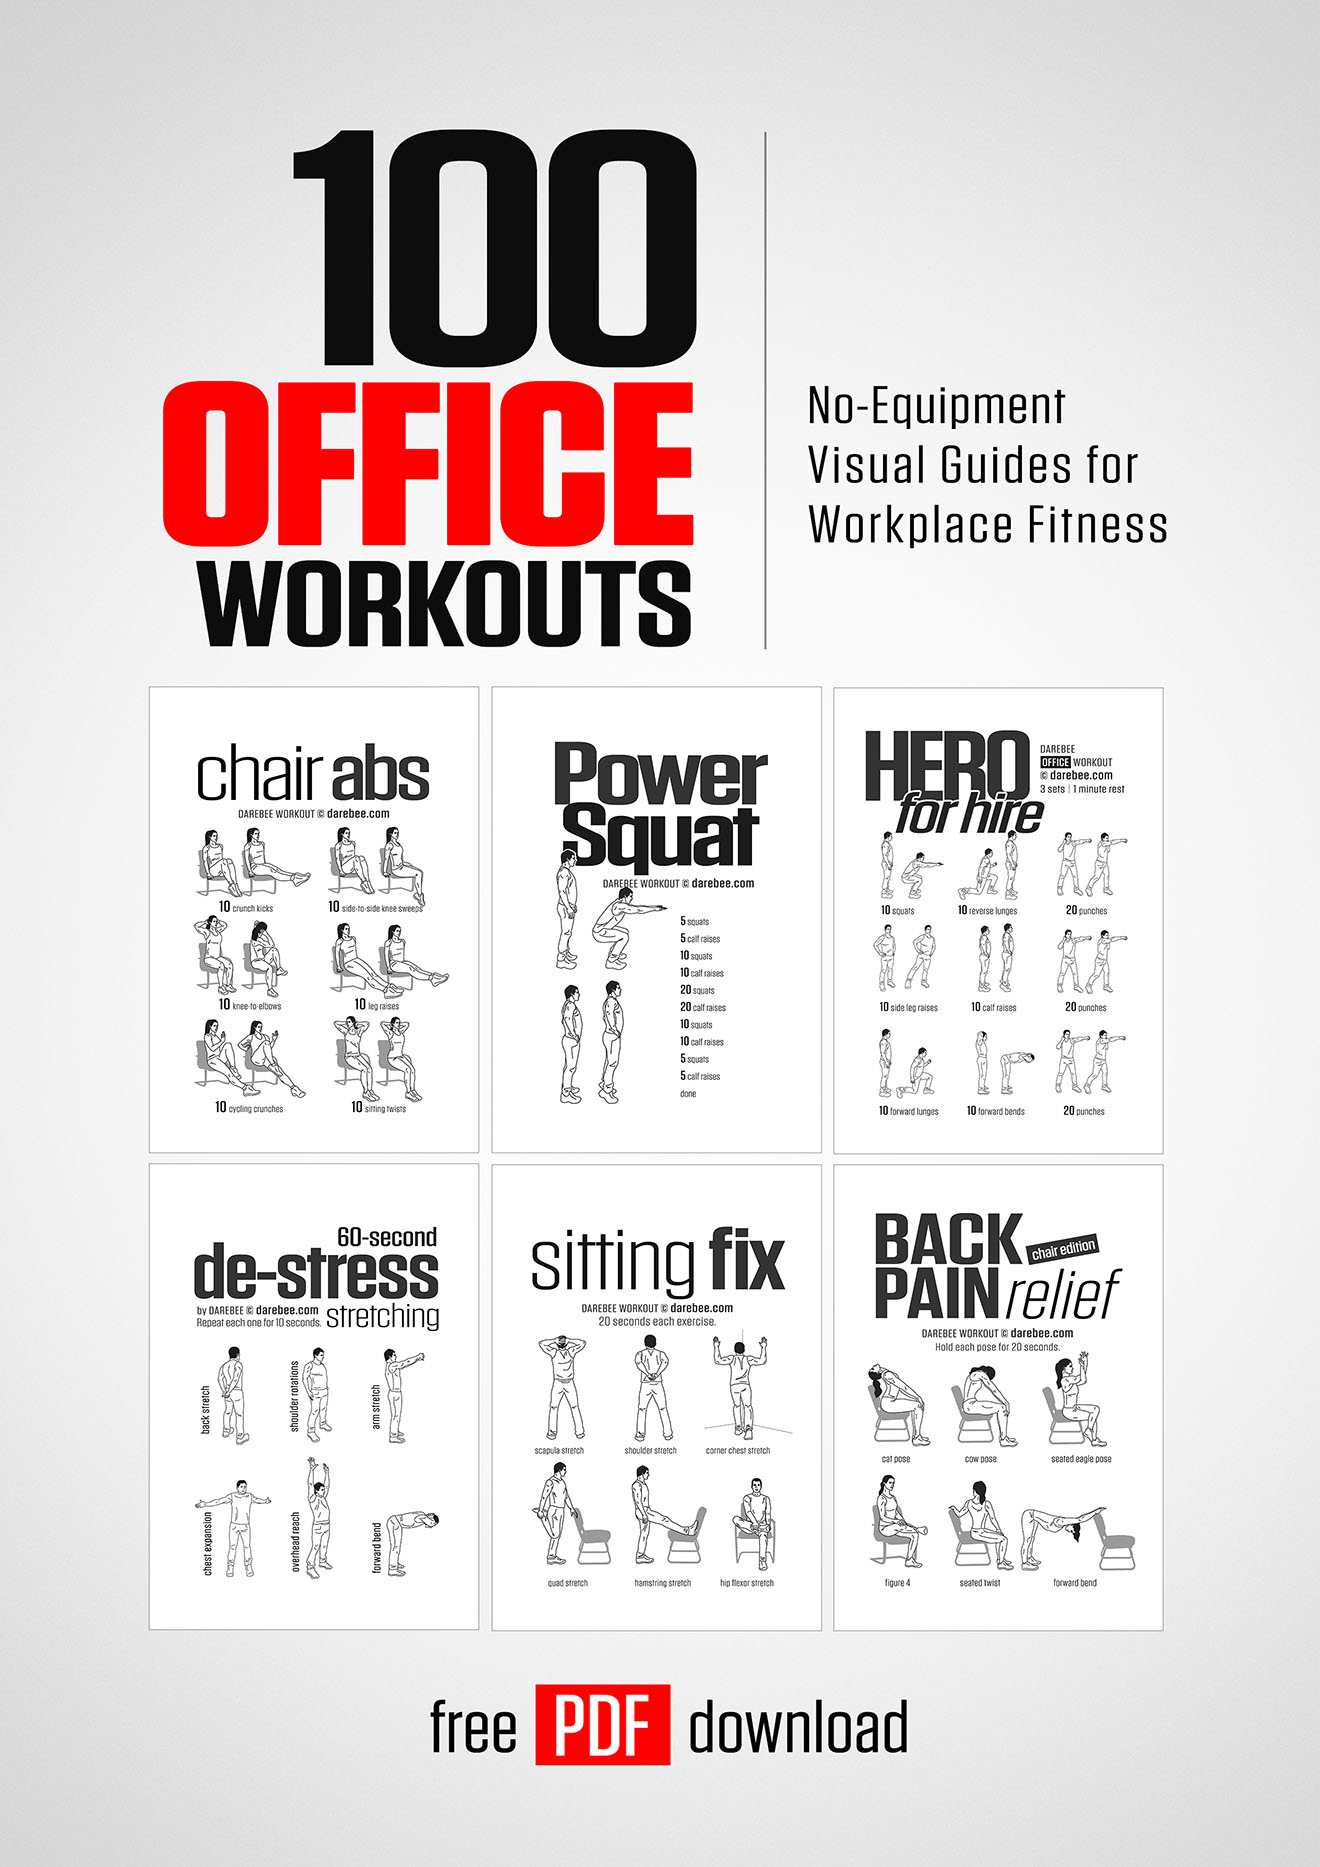 100 office workouts by darebee